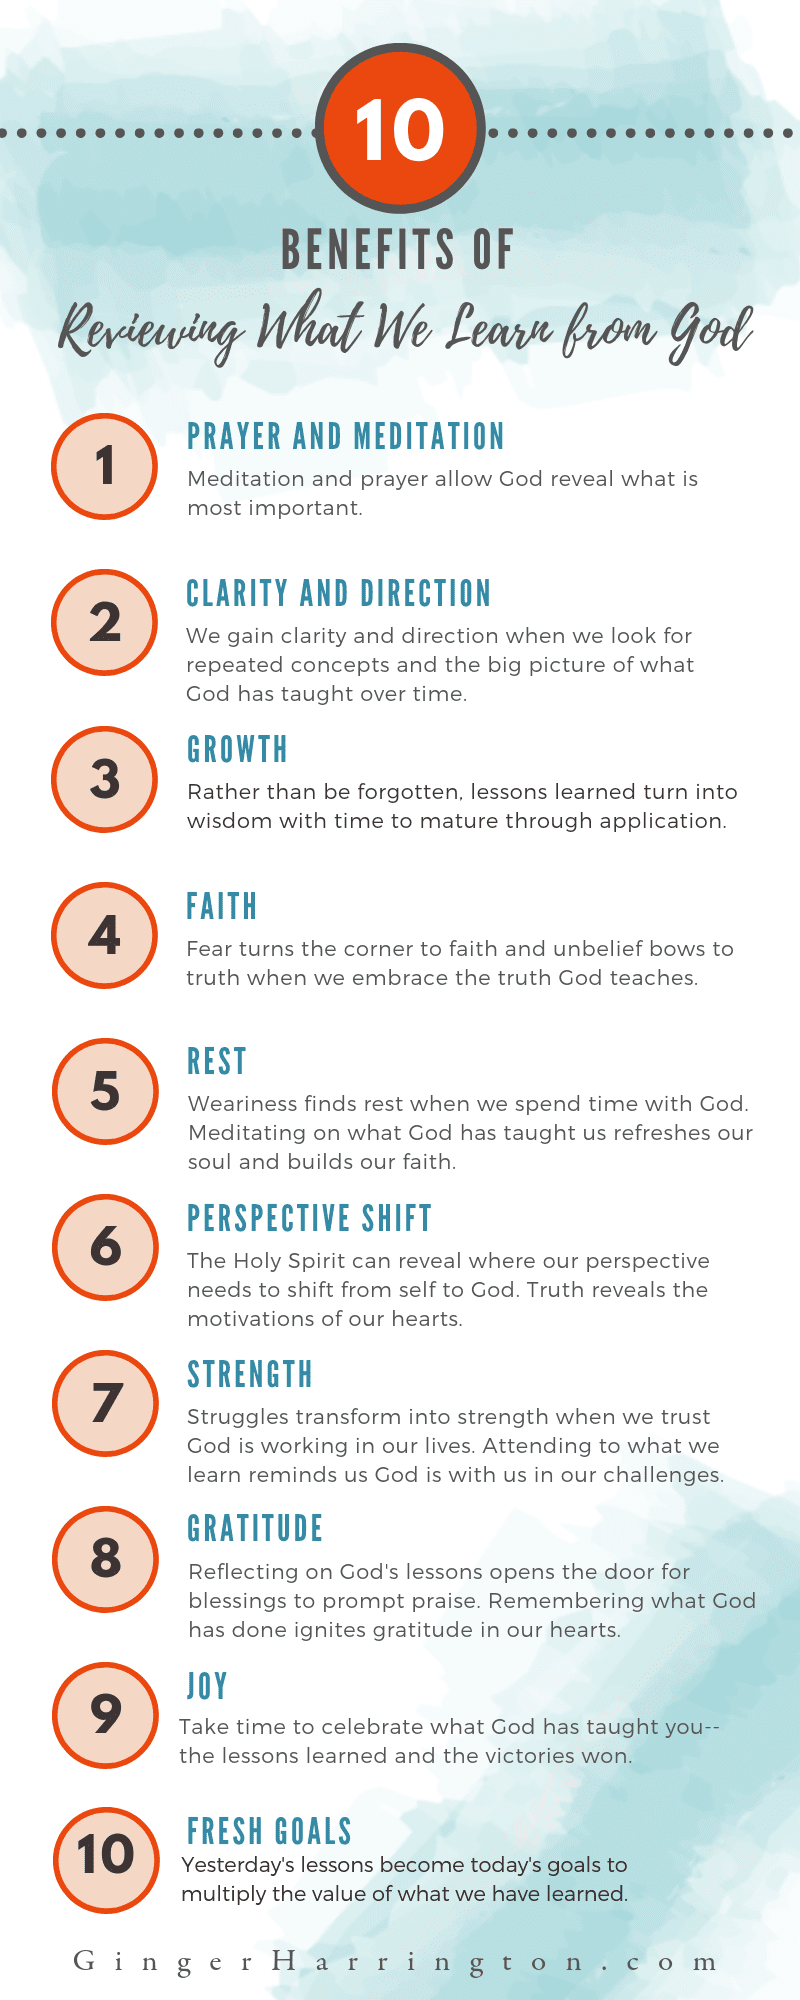 Discover the benefits of reviewing what you learn from God in your Quiet Time, devotions, or Bible study. Are you ready to maximize spiritual growth and start fresh this year with this powerful learning and journaling tool? Whether you journal with words, Bible journal with art, or keep study notes, this tool will ignite spiritual growth. Infographic with aqua water color swashes. Explains 10 Benefits of Reviewing what we learn from God.